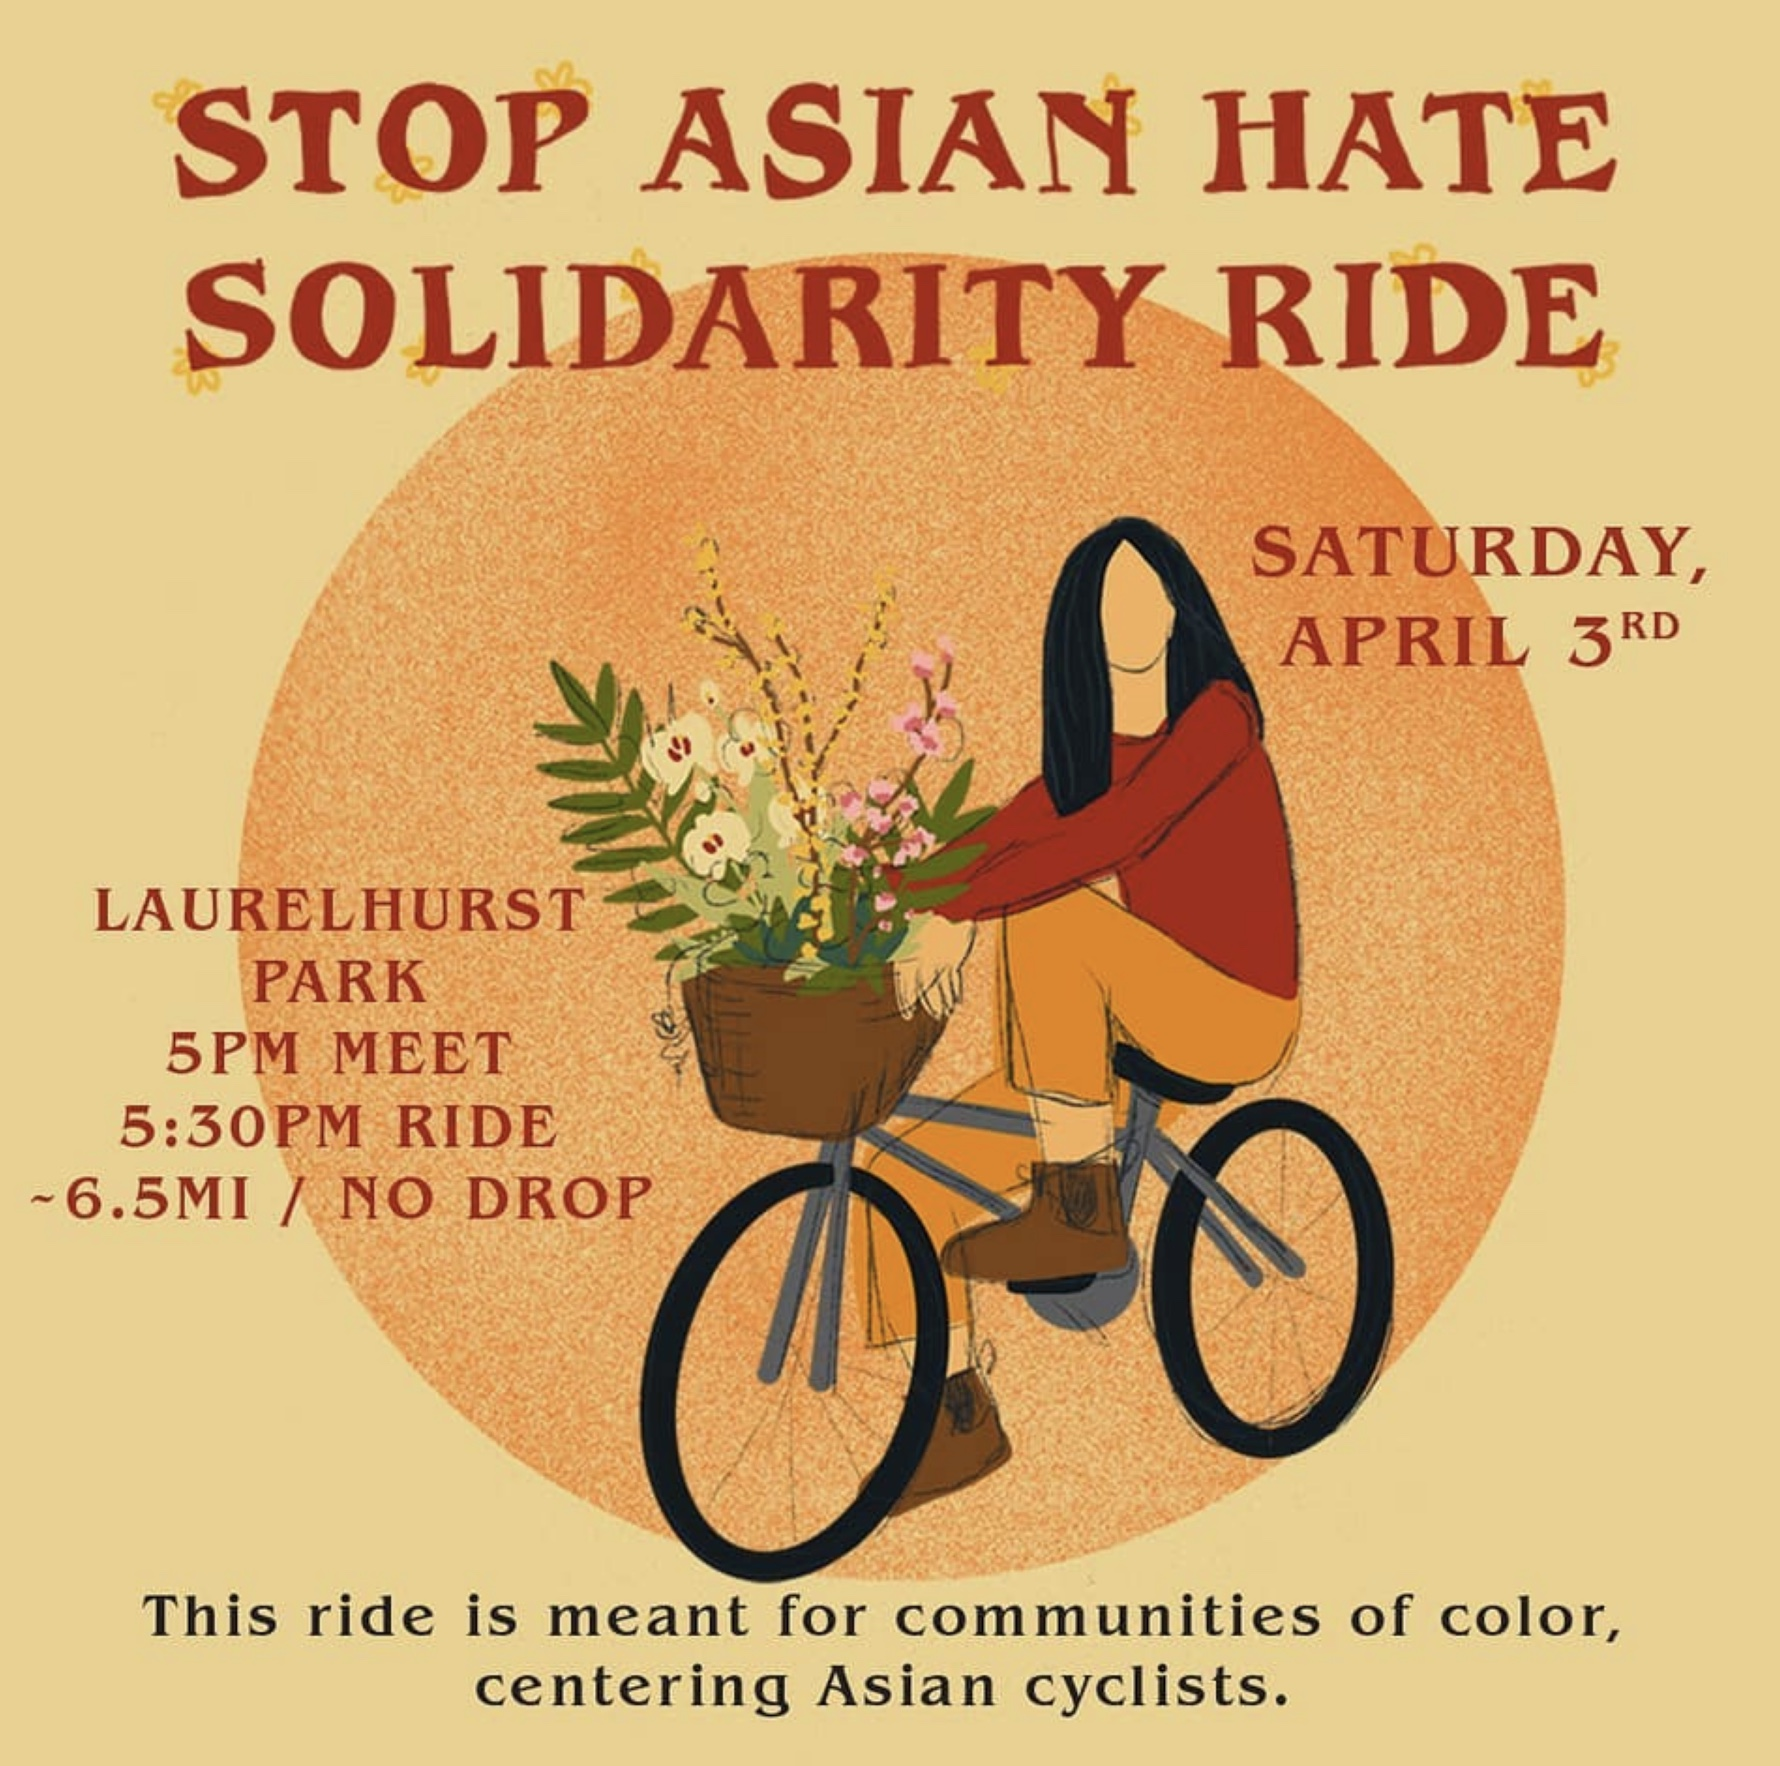 """Image Description (ID): Main maroon color title reads, """"Stop Asian Hate Solidarity Ride."""" Subtitle maroon color reads, """"Saturday, April 3rd / Laurelhurst Park / 5pm meet / 5:30pm ride / ~6.5mi / No Drop."""" Grey color subtitle text reads, """"This ride is meant for communities of color, centering Asian cyclists."""" Image of orange grainy/printed circle on top of a yellow/light mustard background. Centered is a sketch image of an Asian femme cyclist with medium black hair, red longsleeve, orange pants & laced brown boots. They are riding a gray/blue bike with a brown basket that is holding an assortment of white, yellow & pink flowers with spattered greenery."""